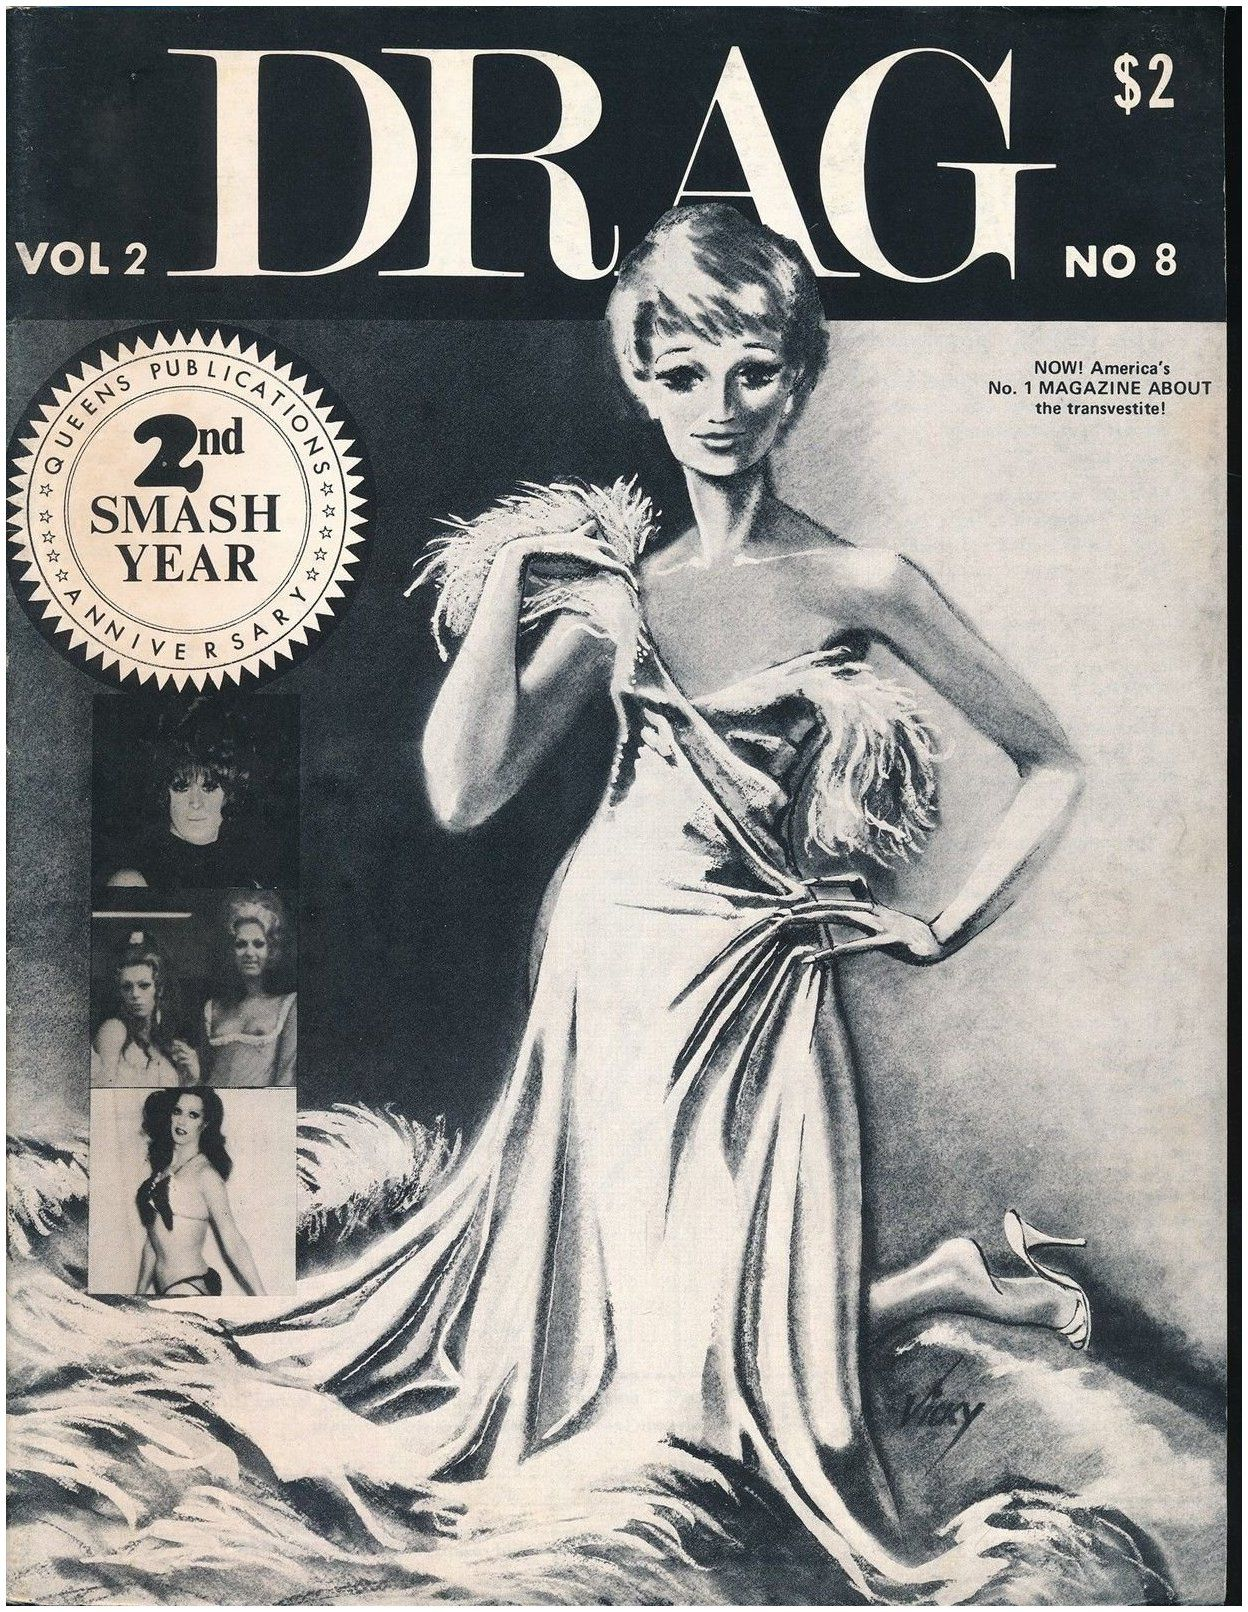 Pin on vintage Drag cover art